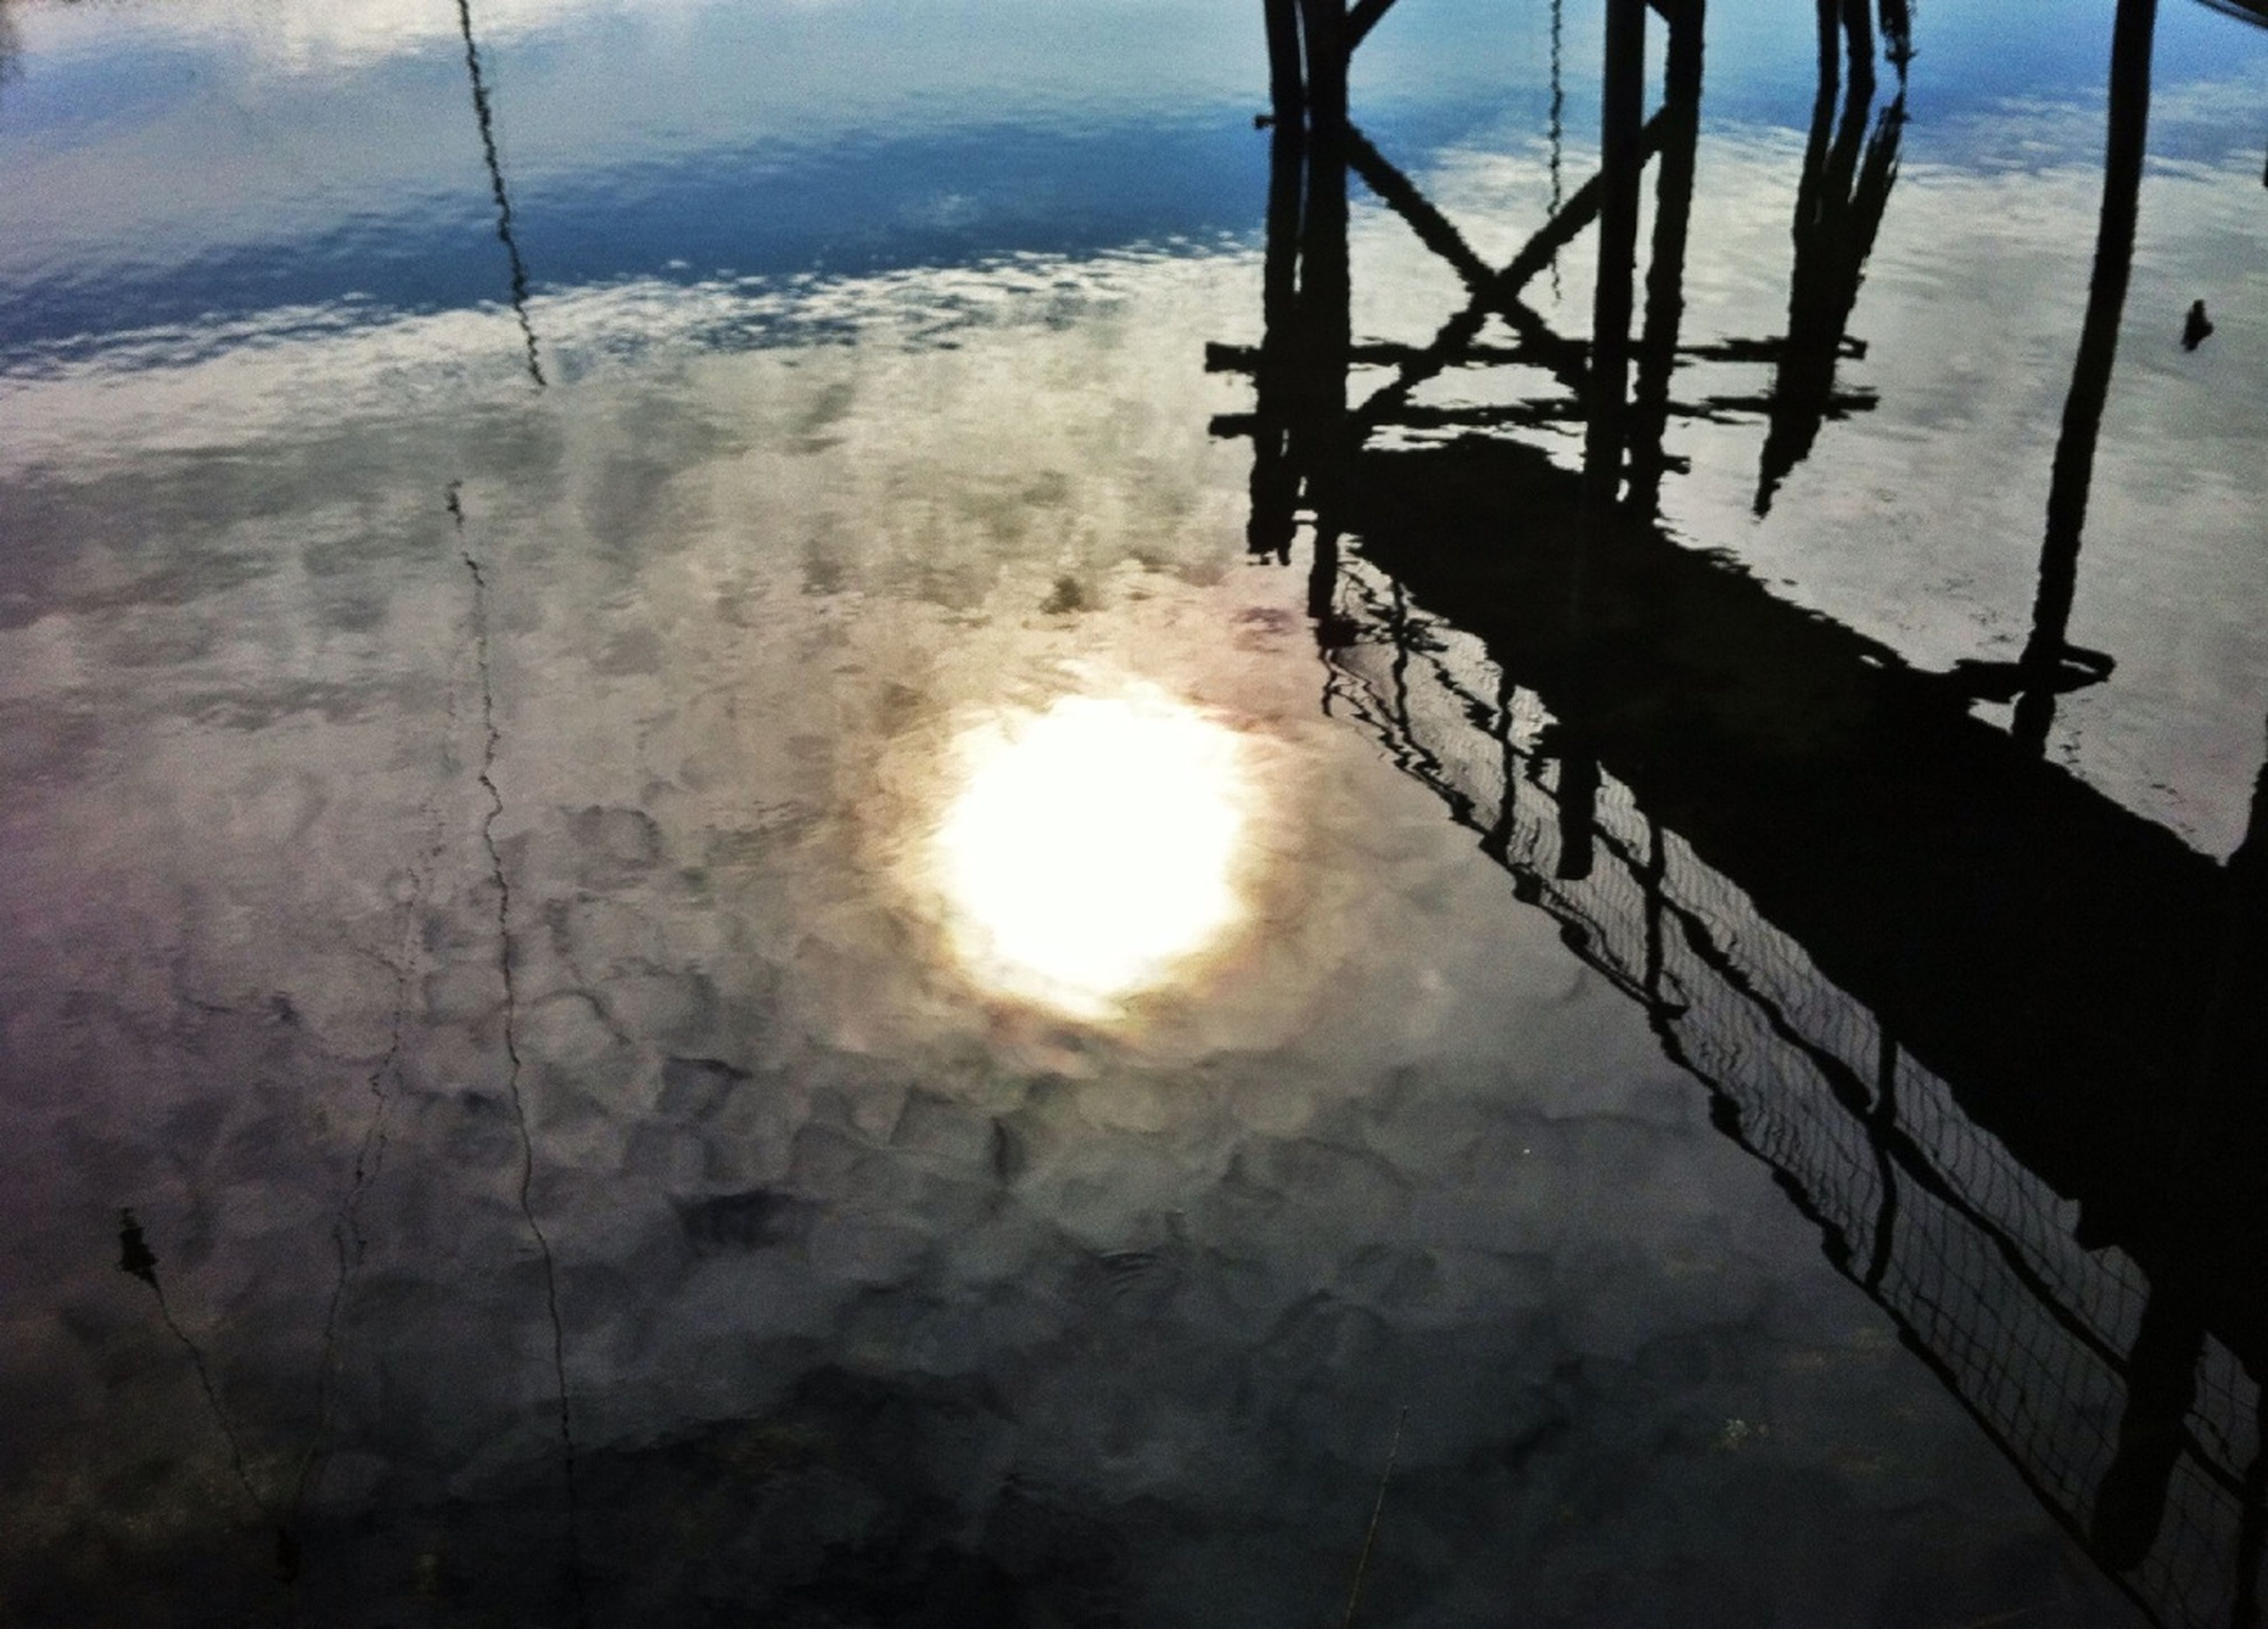 water, reflection, sea, sunset, sun, sunlight, sky, tranquility, nature, tranquil scene, sunbeam, beauty in nature, transportation, scenics, rippled, railing, pier, outdoors, nautical vessel, silhouette